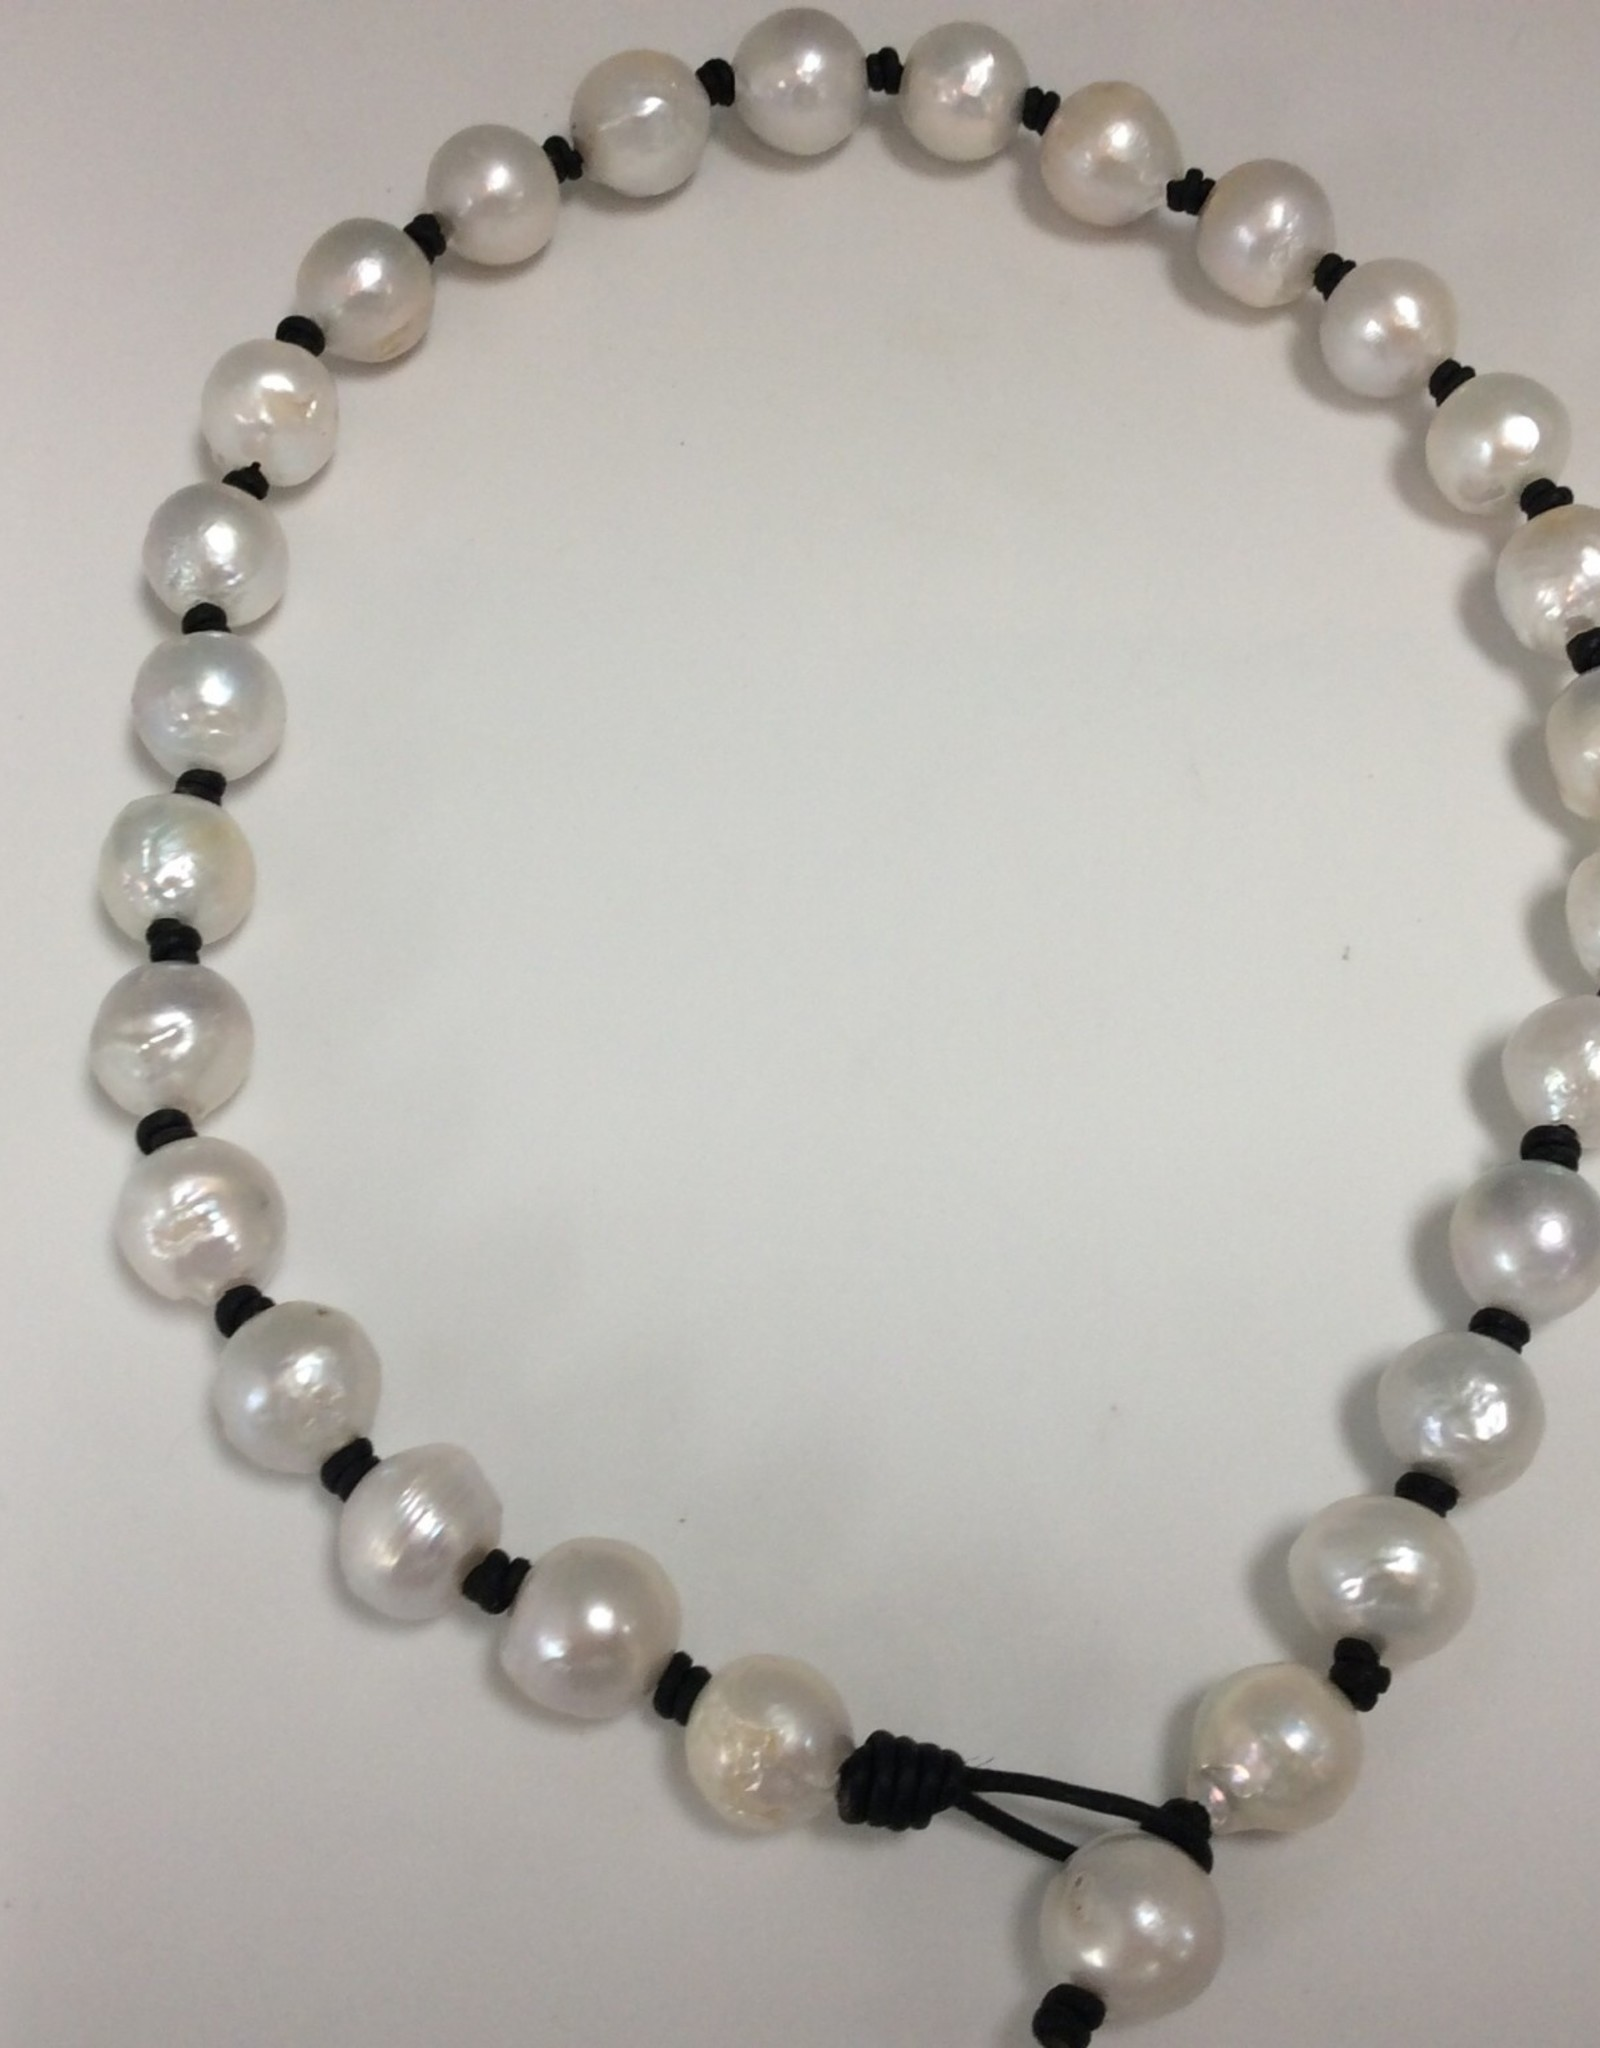 Big White Freshwater Pearls on Leather Necklace